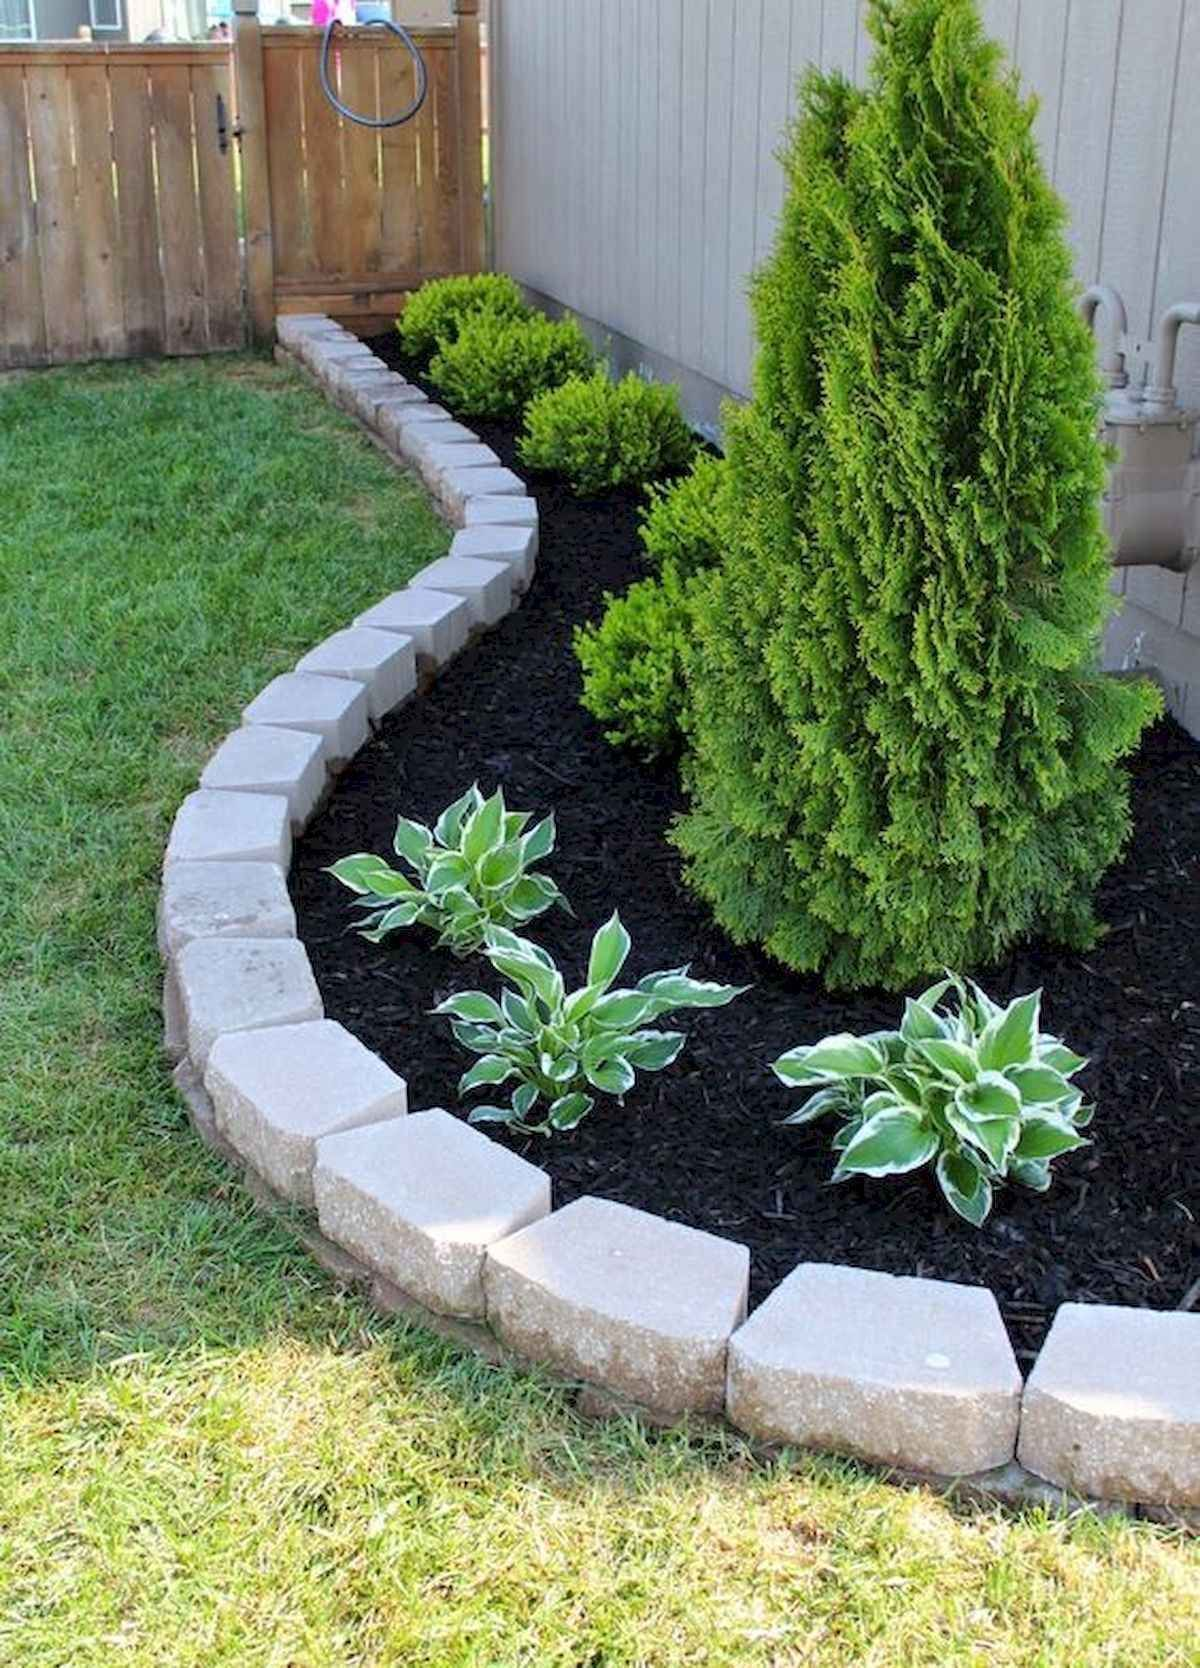 90 Simple And Beautiful Front Yard Landscaping Ideas On A Budget 41 Easyfr In 2020 Front Garden Landscape Front Yard Landscaping Design Backyard Landscaping Designs